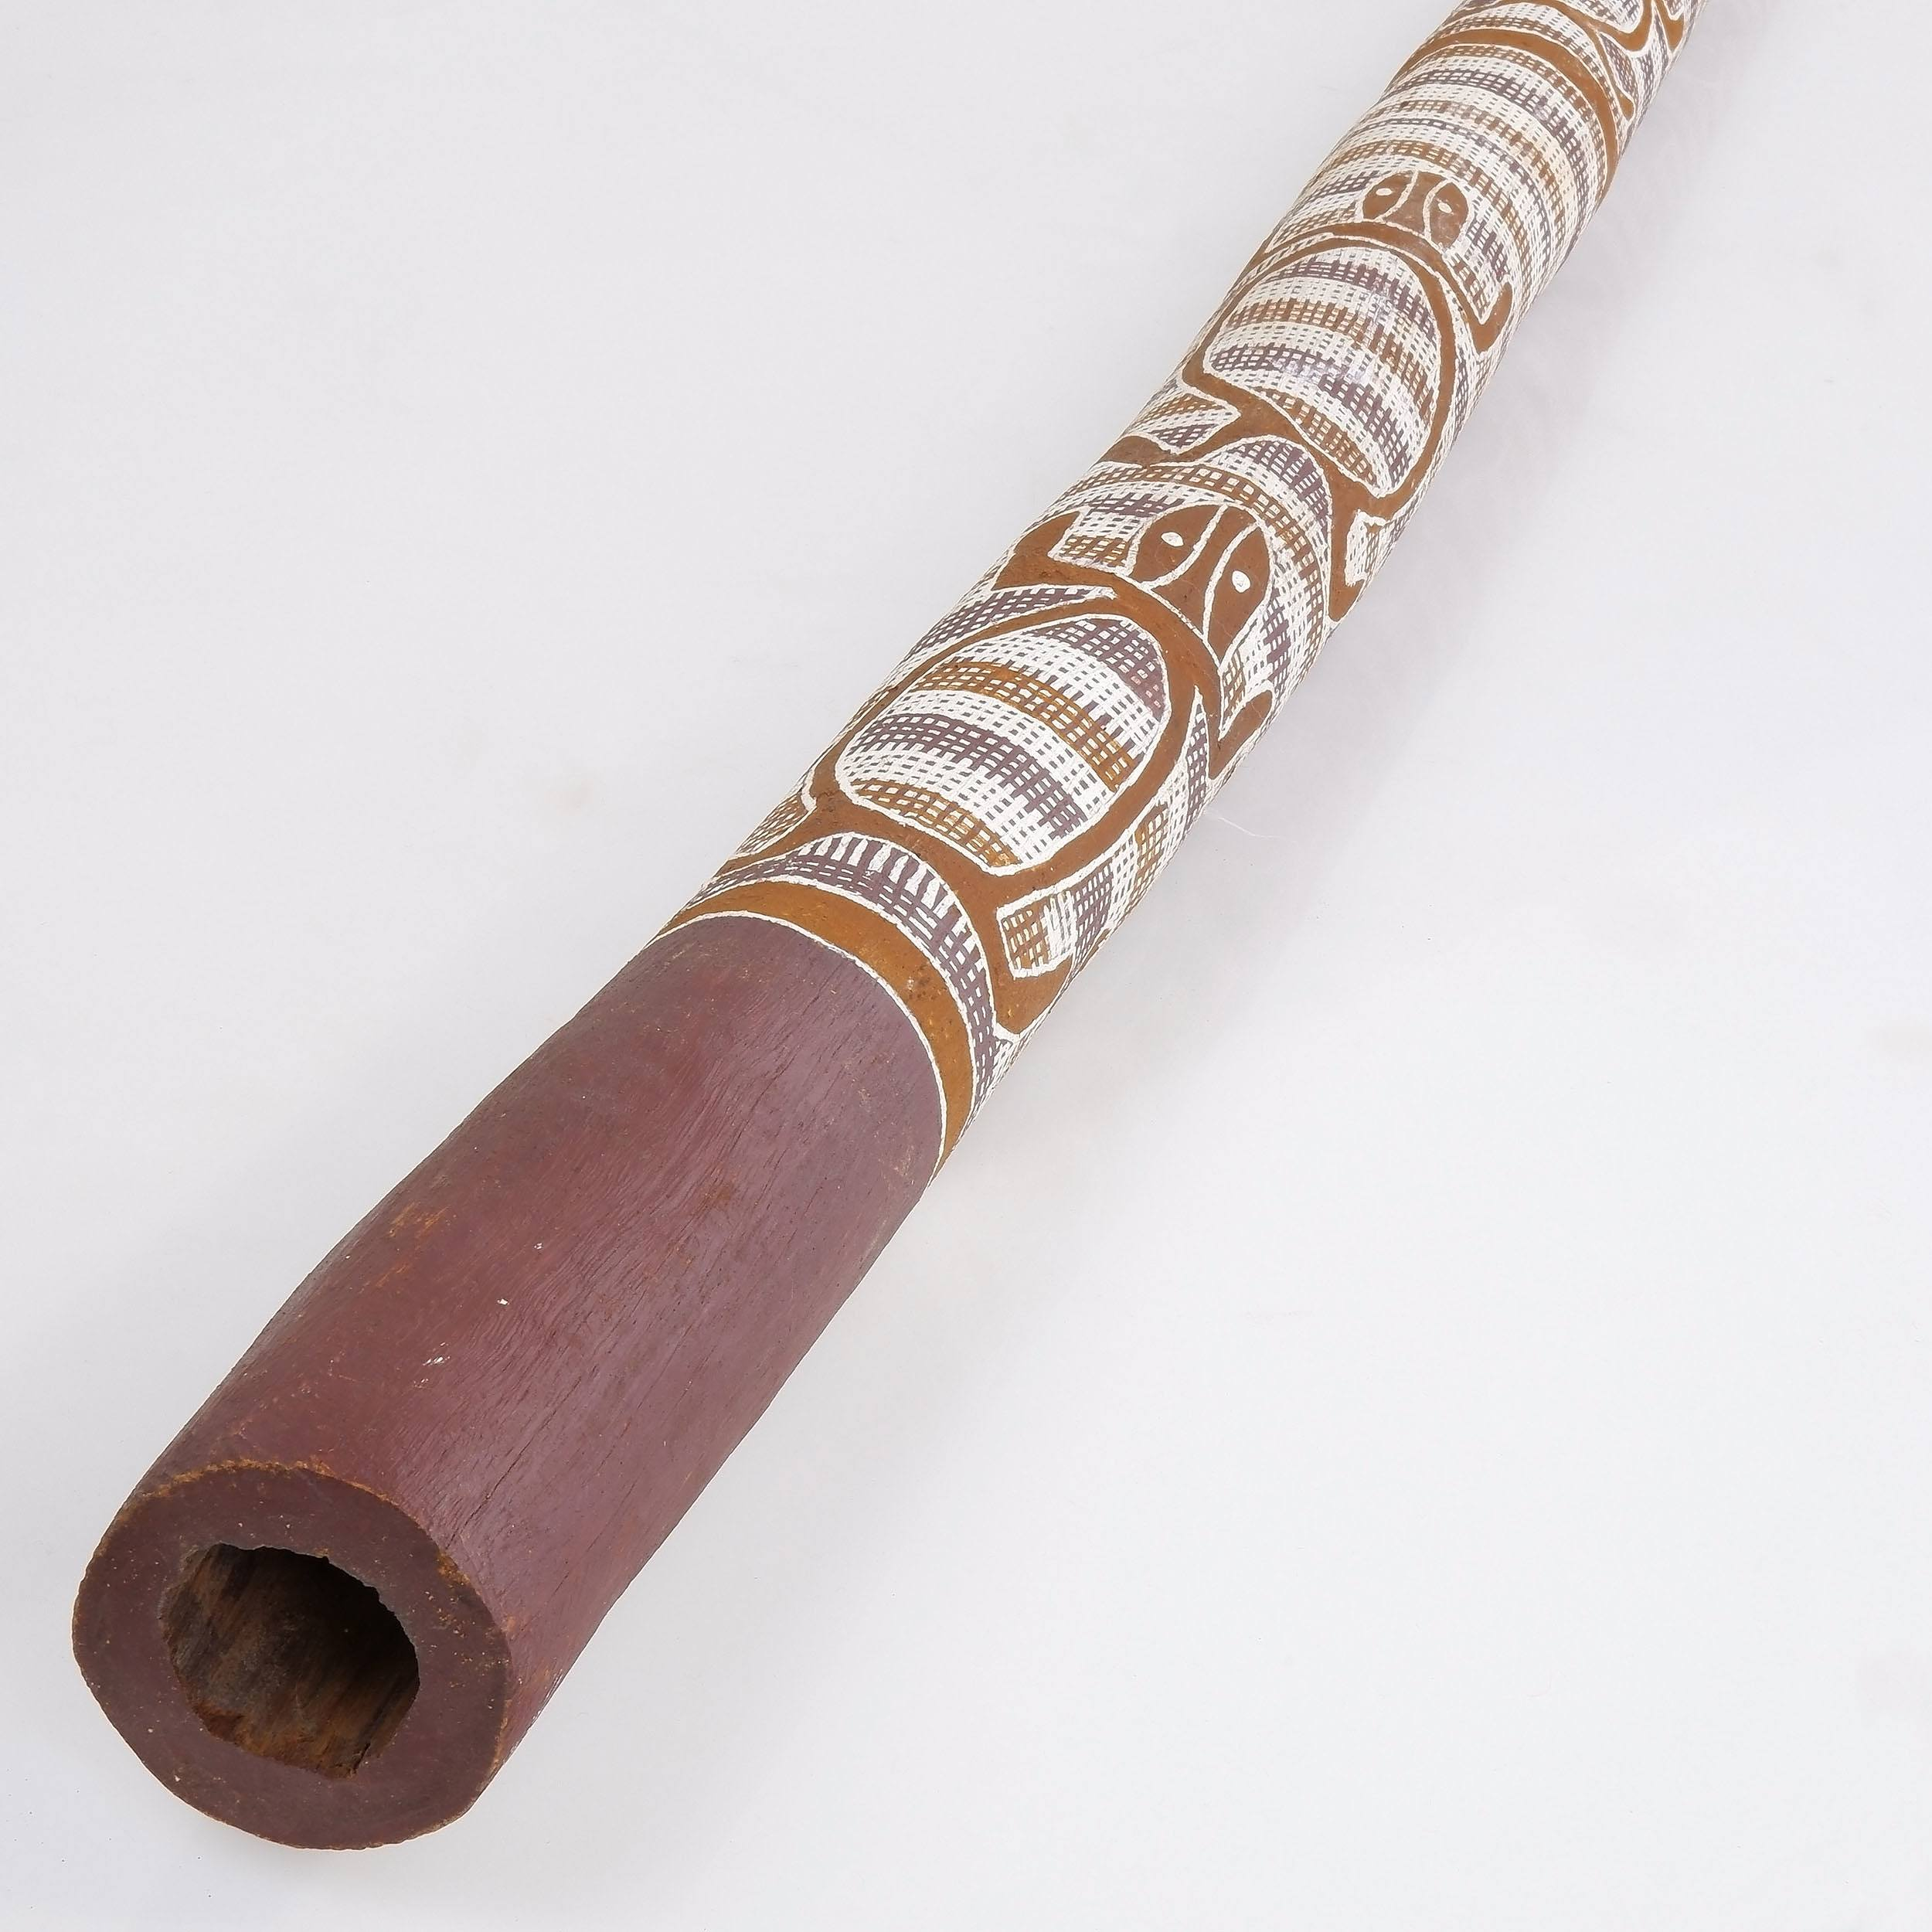 'Didgeridoo by Narila of Nakara Tribe, Acquired Maningrida 1977'